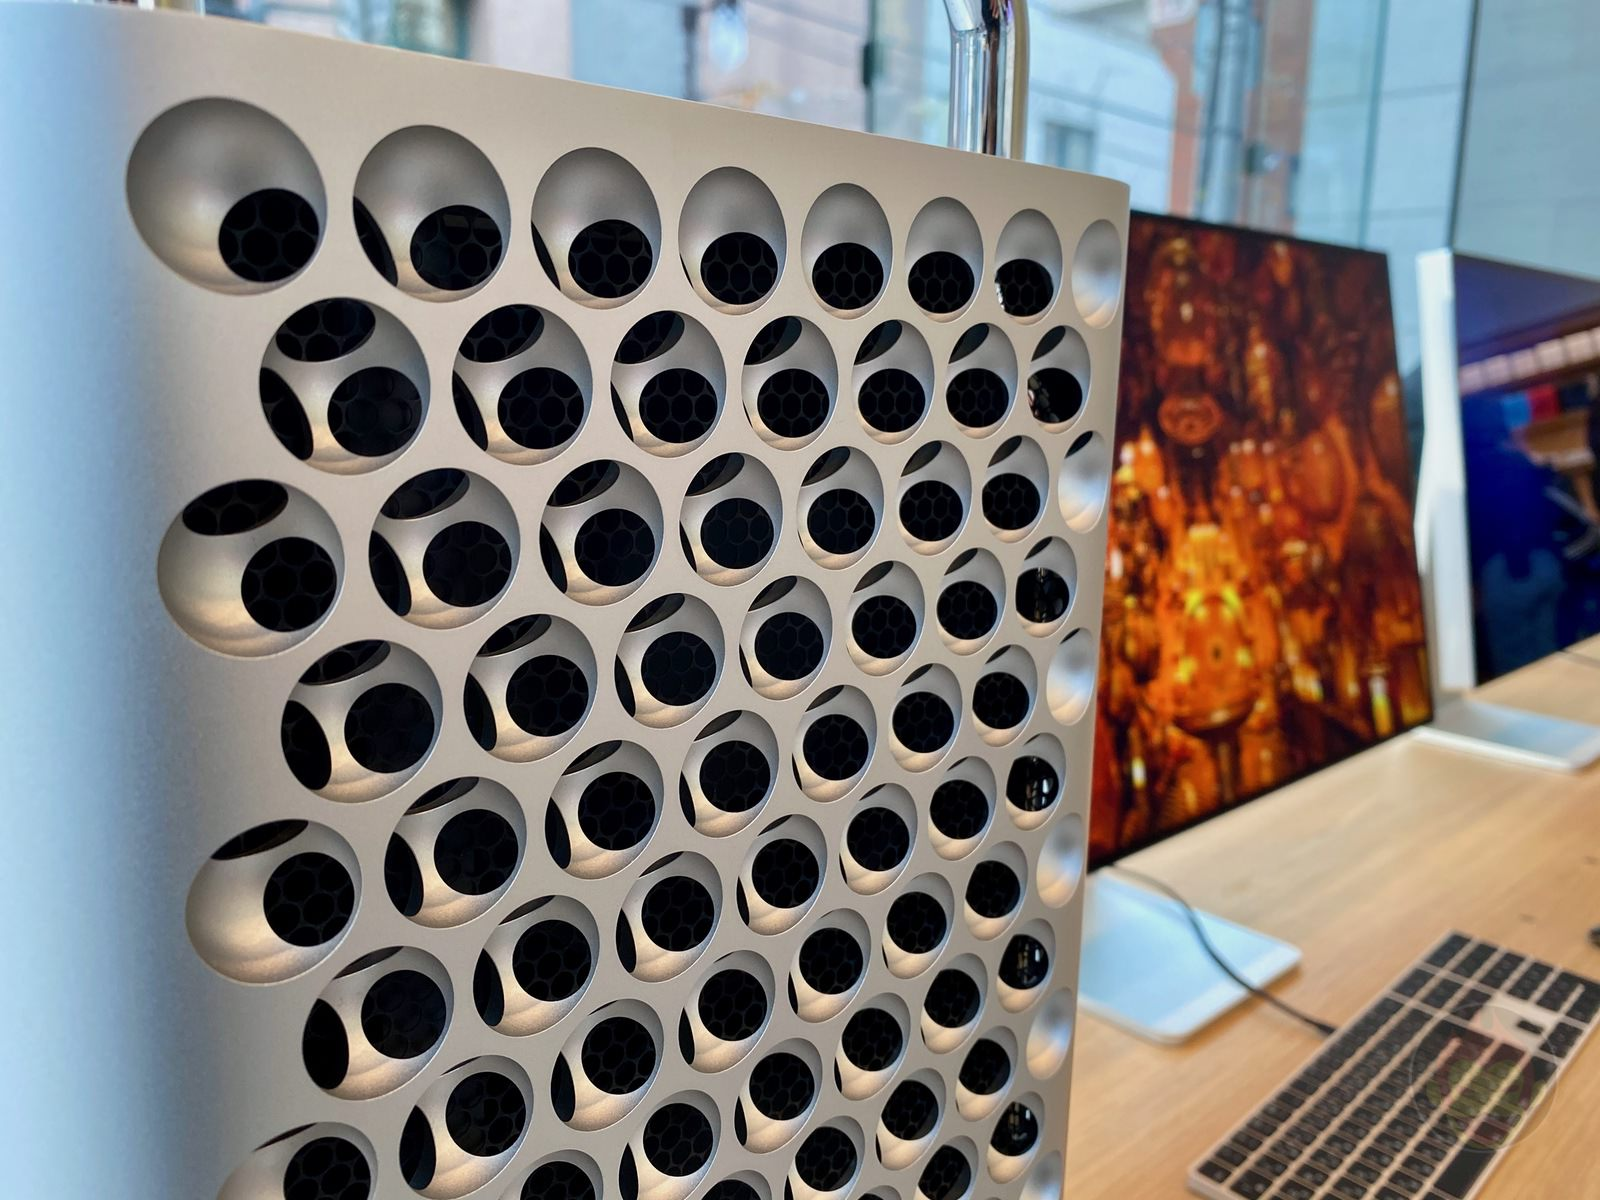 Mac-Pro-Pro-Display-XDR-Apple-Omotesando-08.jpeg